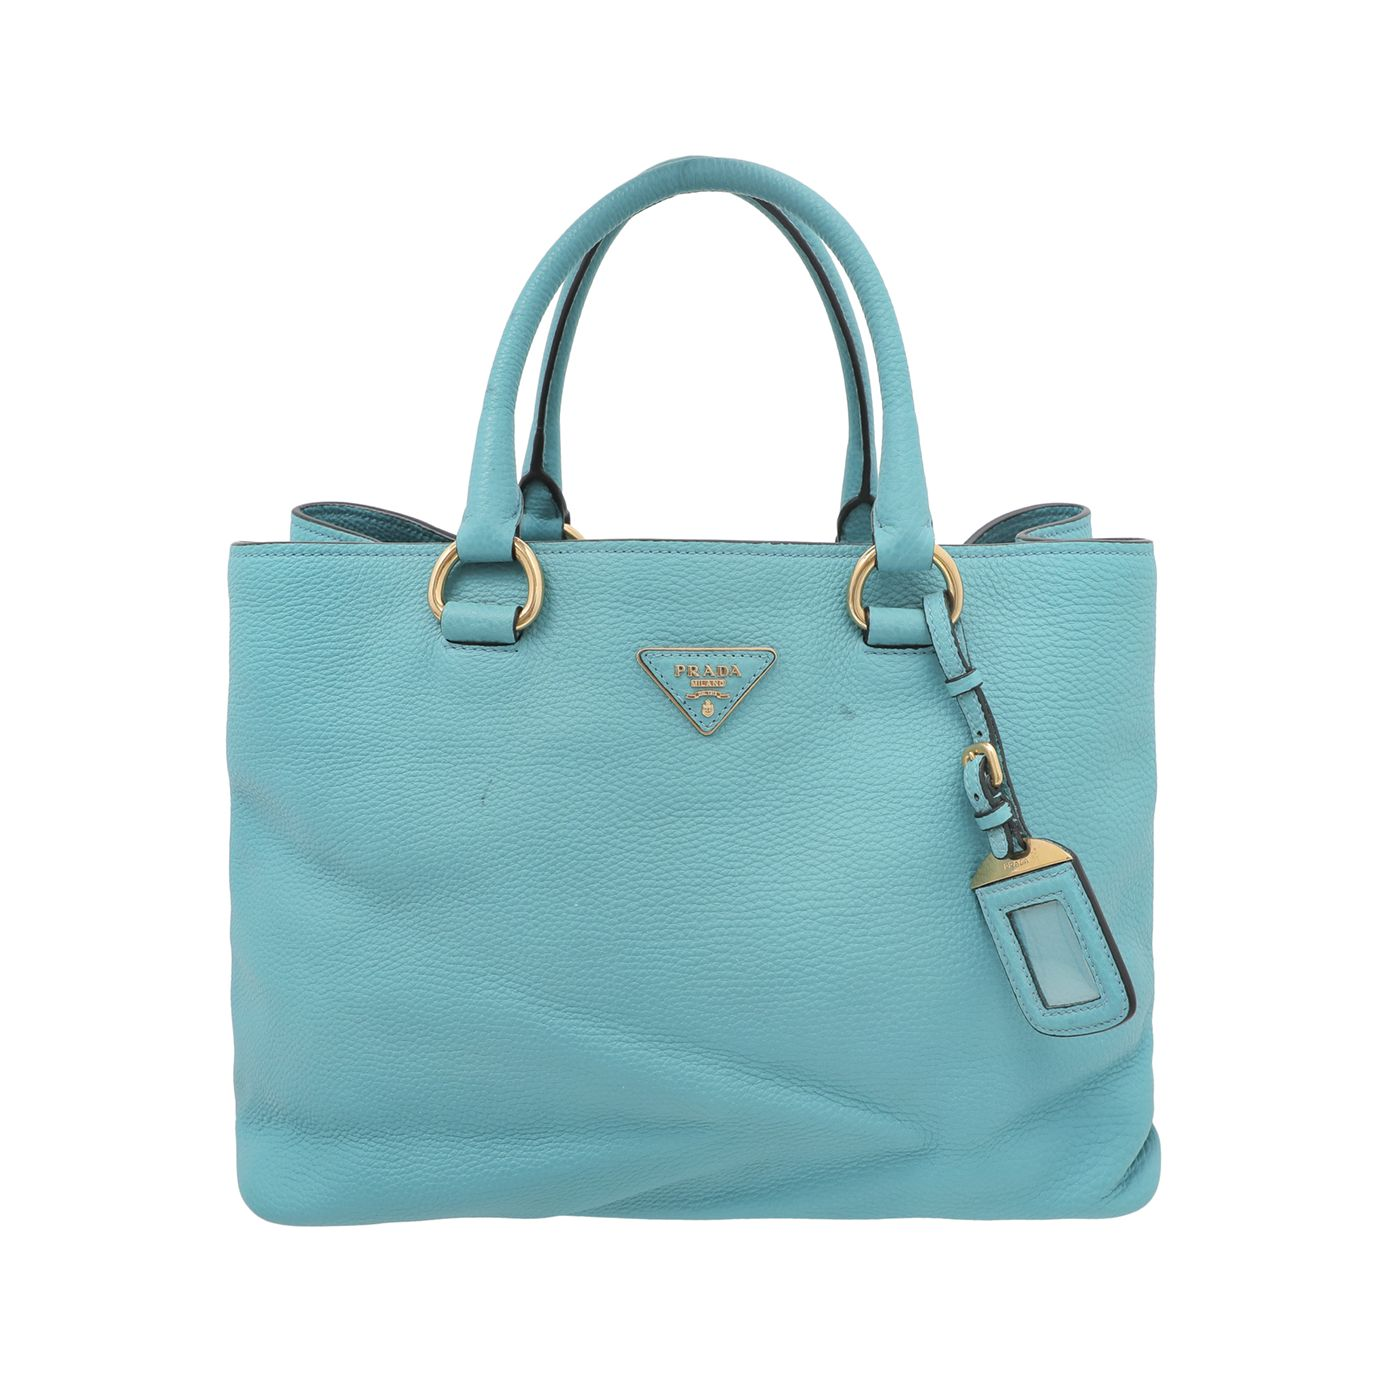 Prada Turchese Vitello Daino Shopping Tote Bag